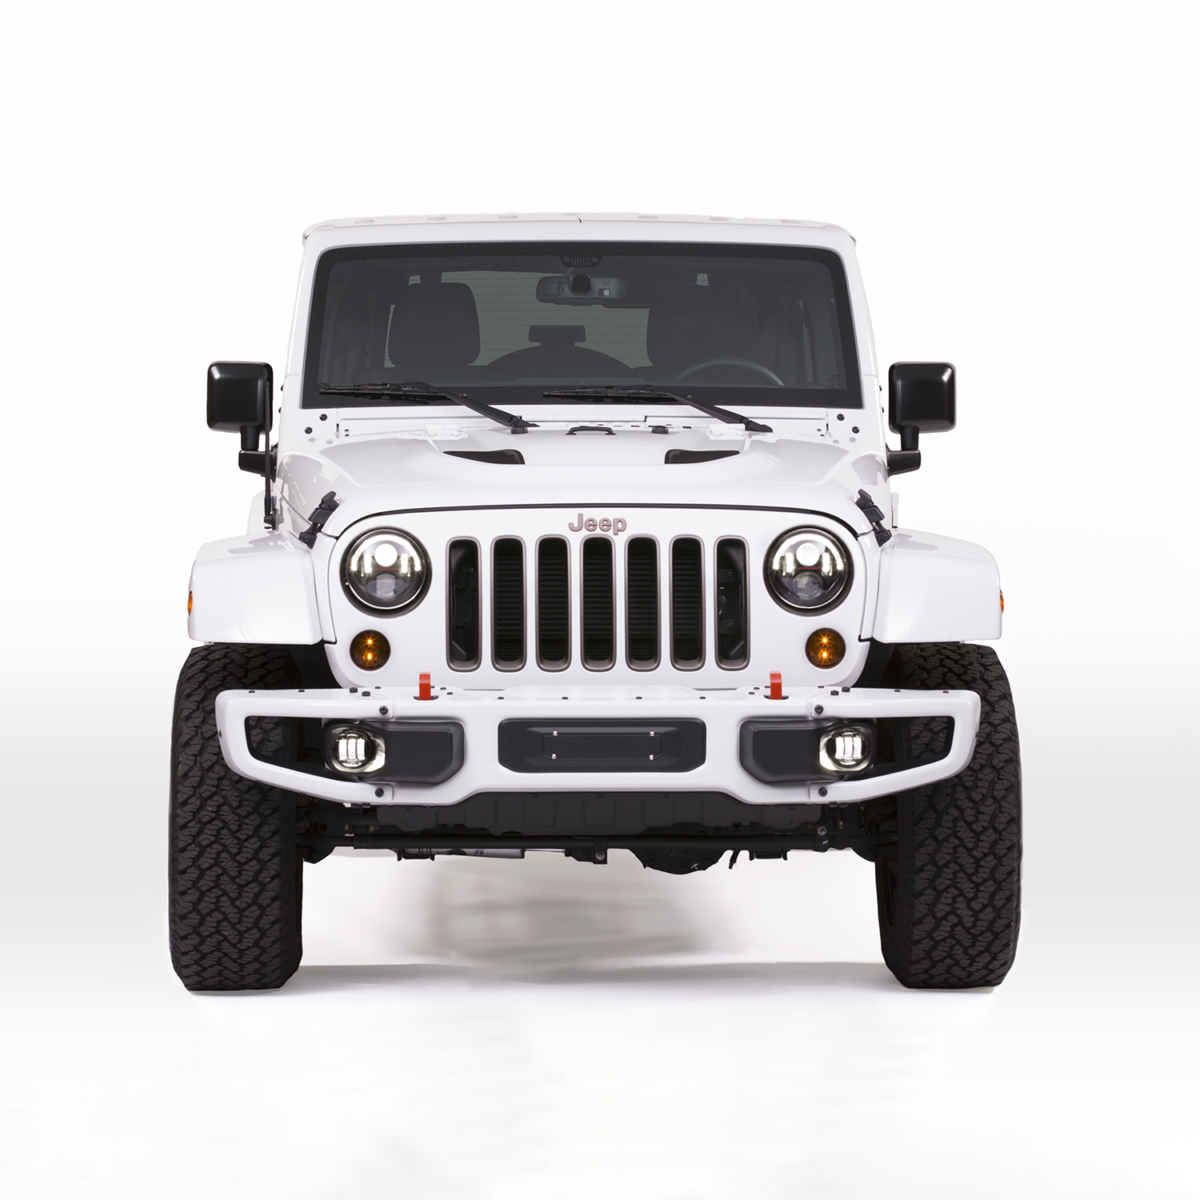 led-jeep-lights-j2-series-installed-on-jeep-wide-photo-2017-1200x1200